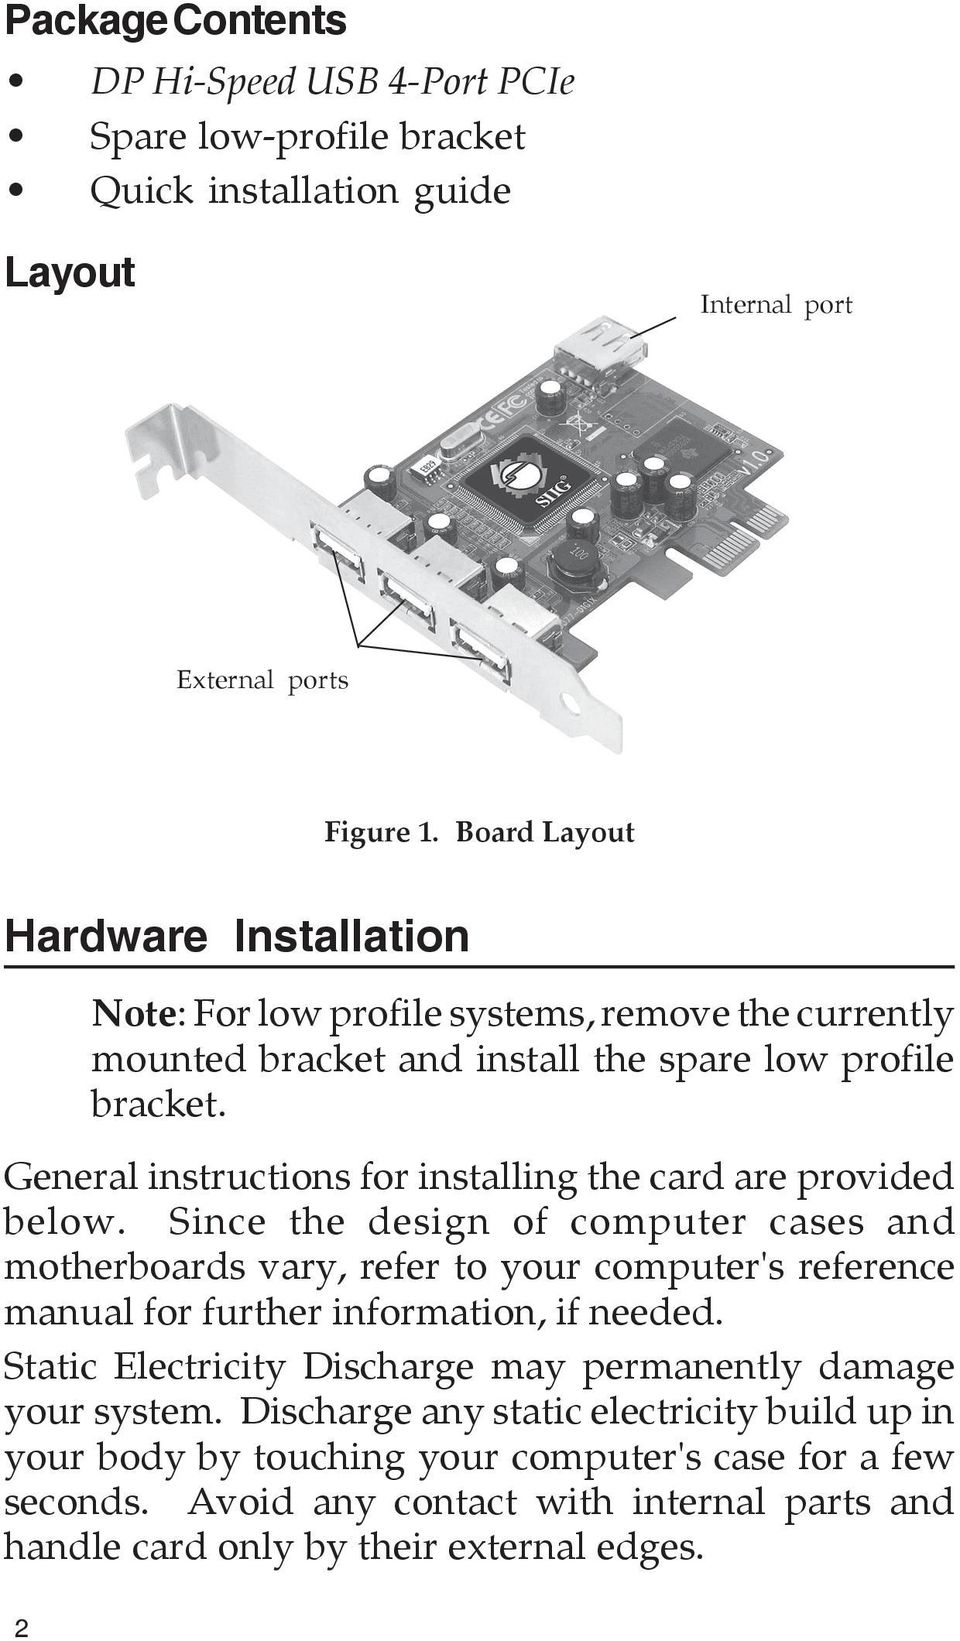 General instructions for installing the card are provided below.